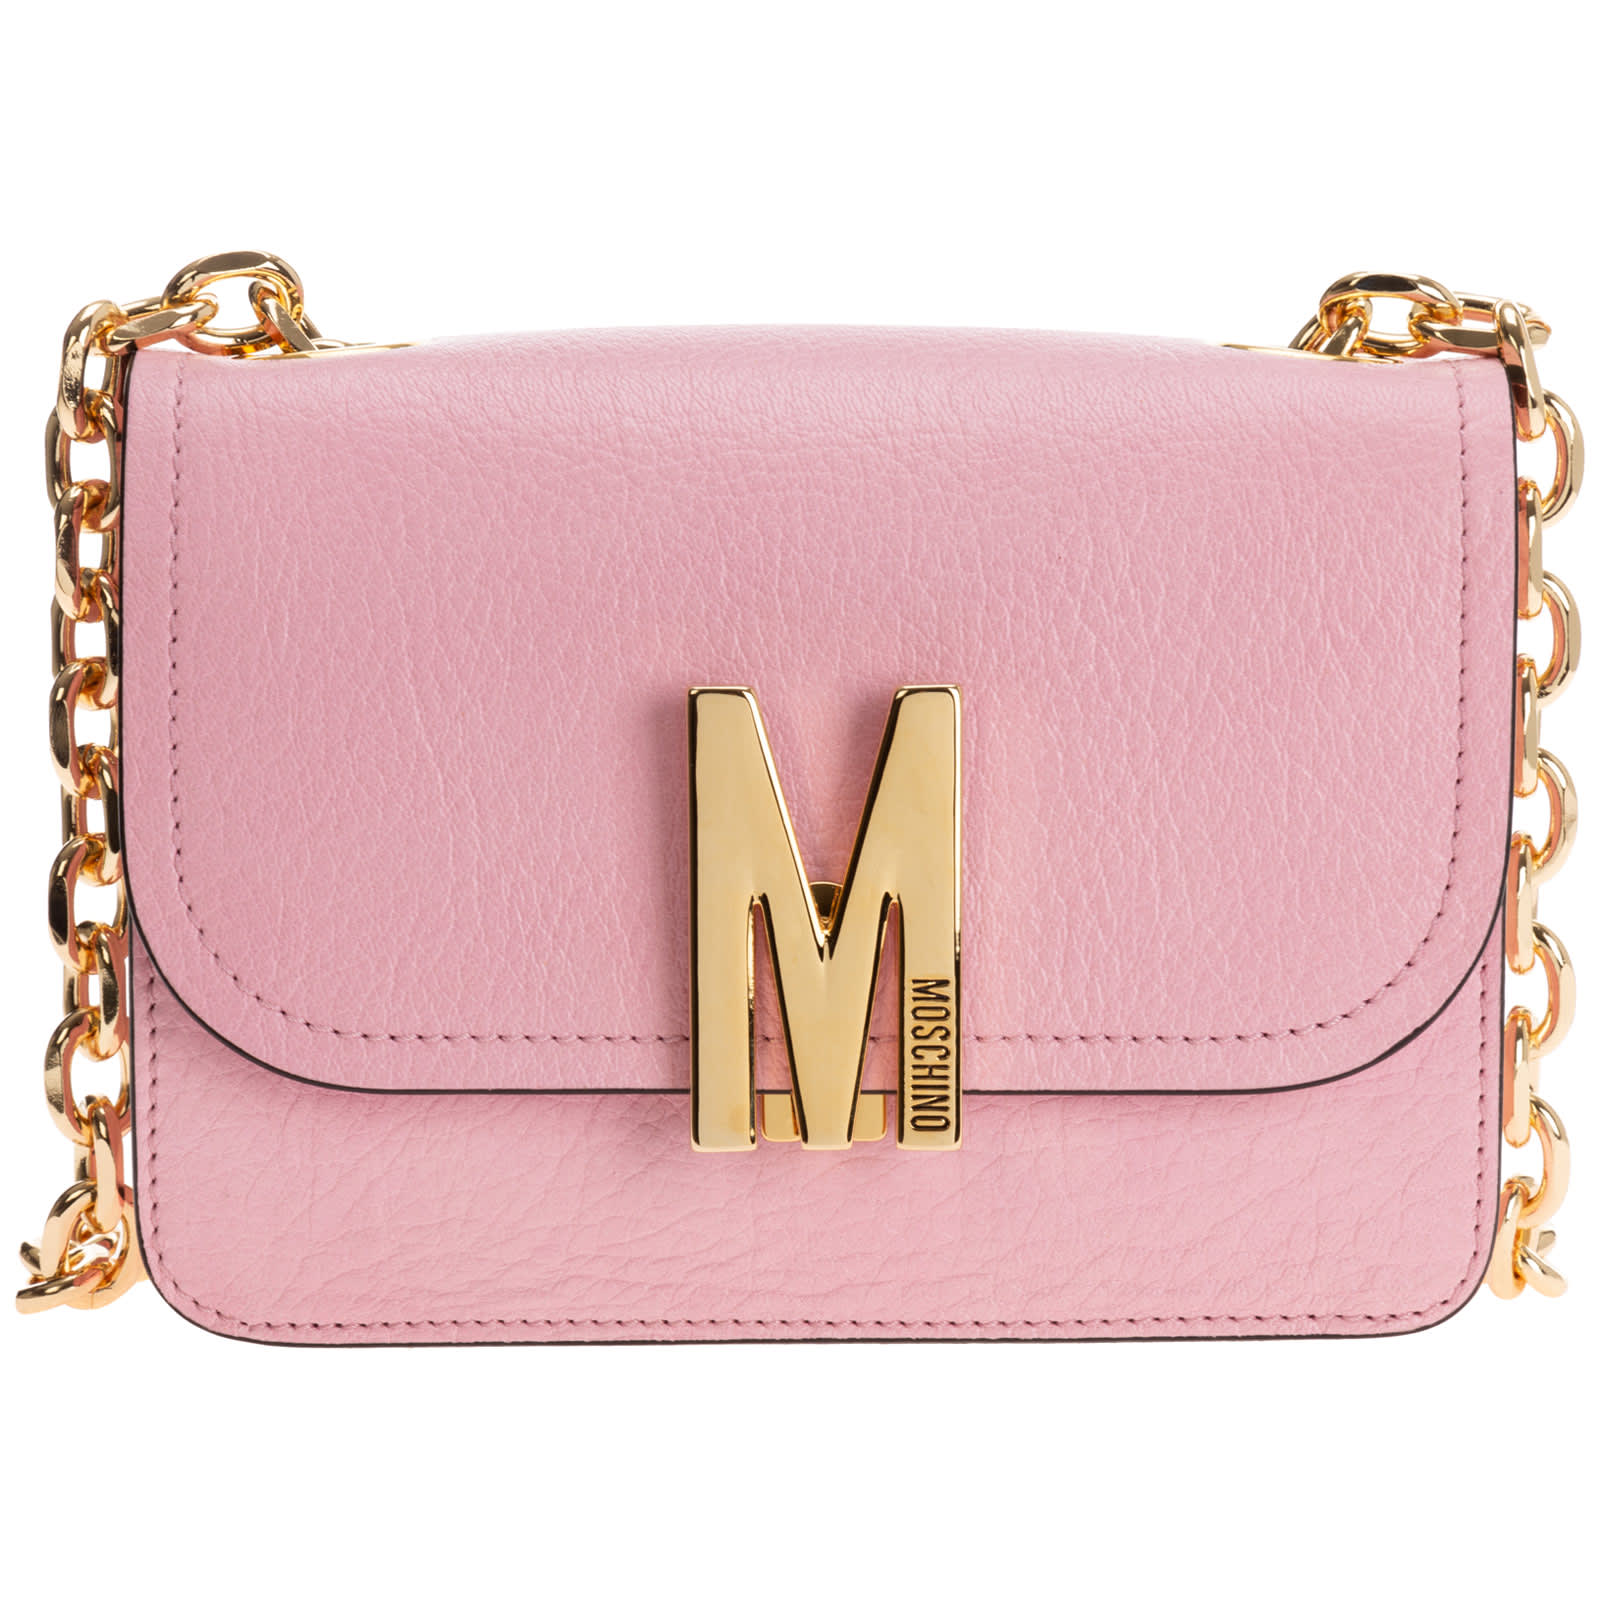 Moschino M Shoulder Bag In Rosa